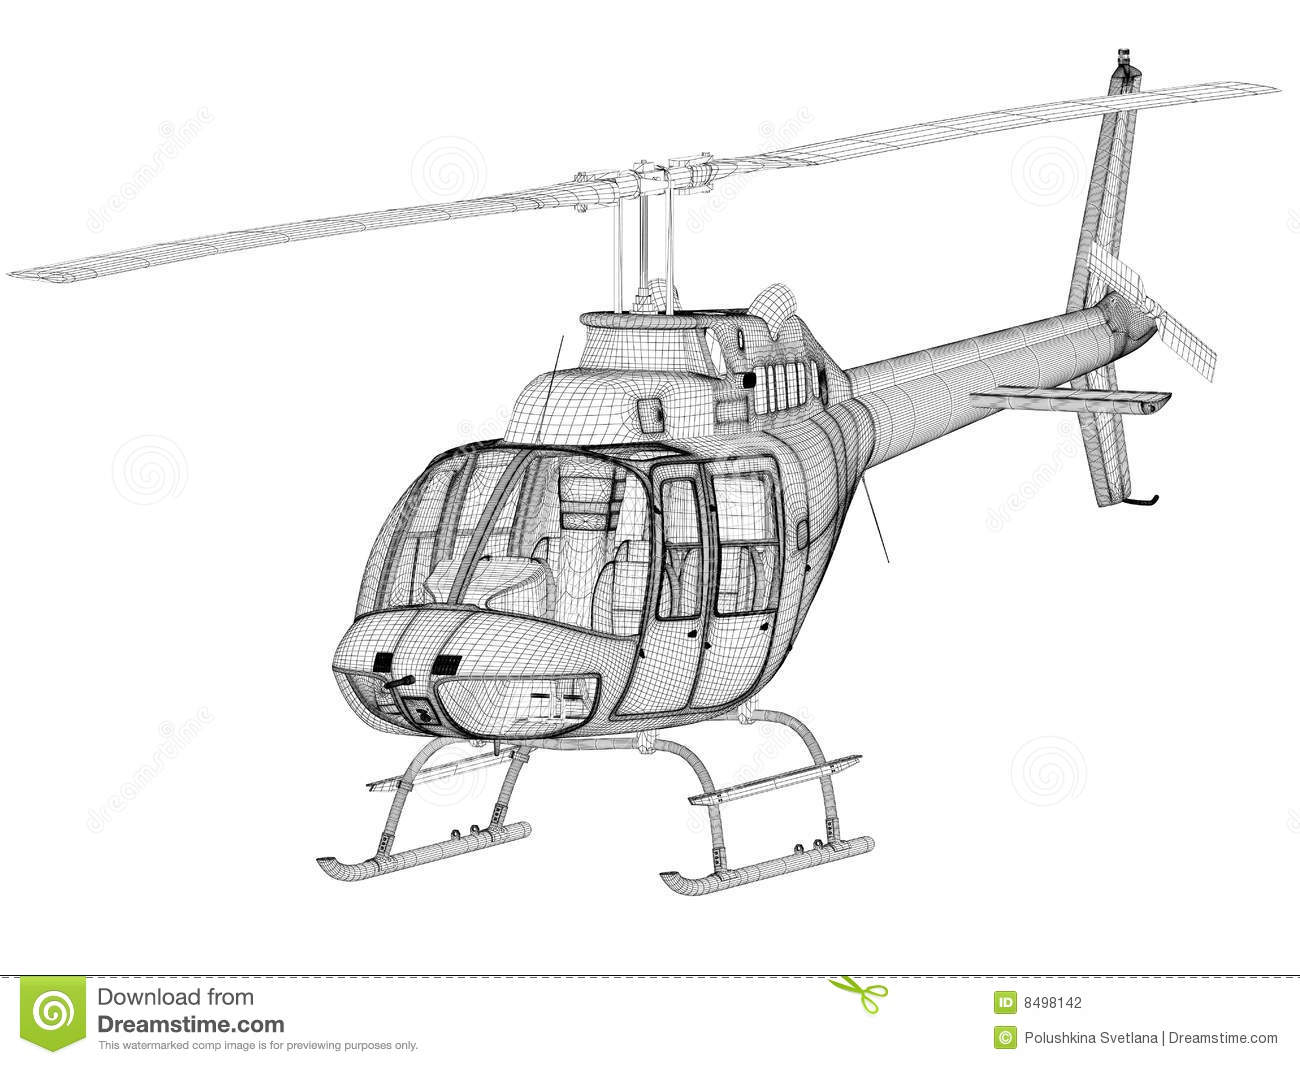 helicopter schematic diagram with Stock Photography Helicopter 3d Model Front View Image8498142 on Jet as well Direct Drive Top Drive Designed To Eliminate Failures Downtime Related To Gearbox Motor 1815 in addition LBD14 500W 24V moreover Us Army Apache Longbow Ah 64d Attack Helicopter Operators Manual together with Mcdonnell Douglas Av 8b Harrier Ii.